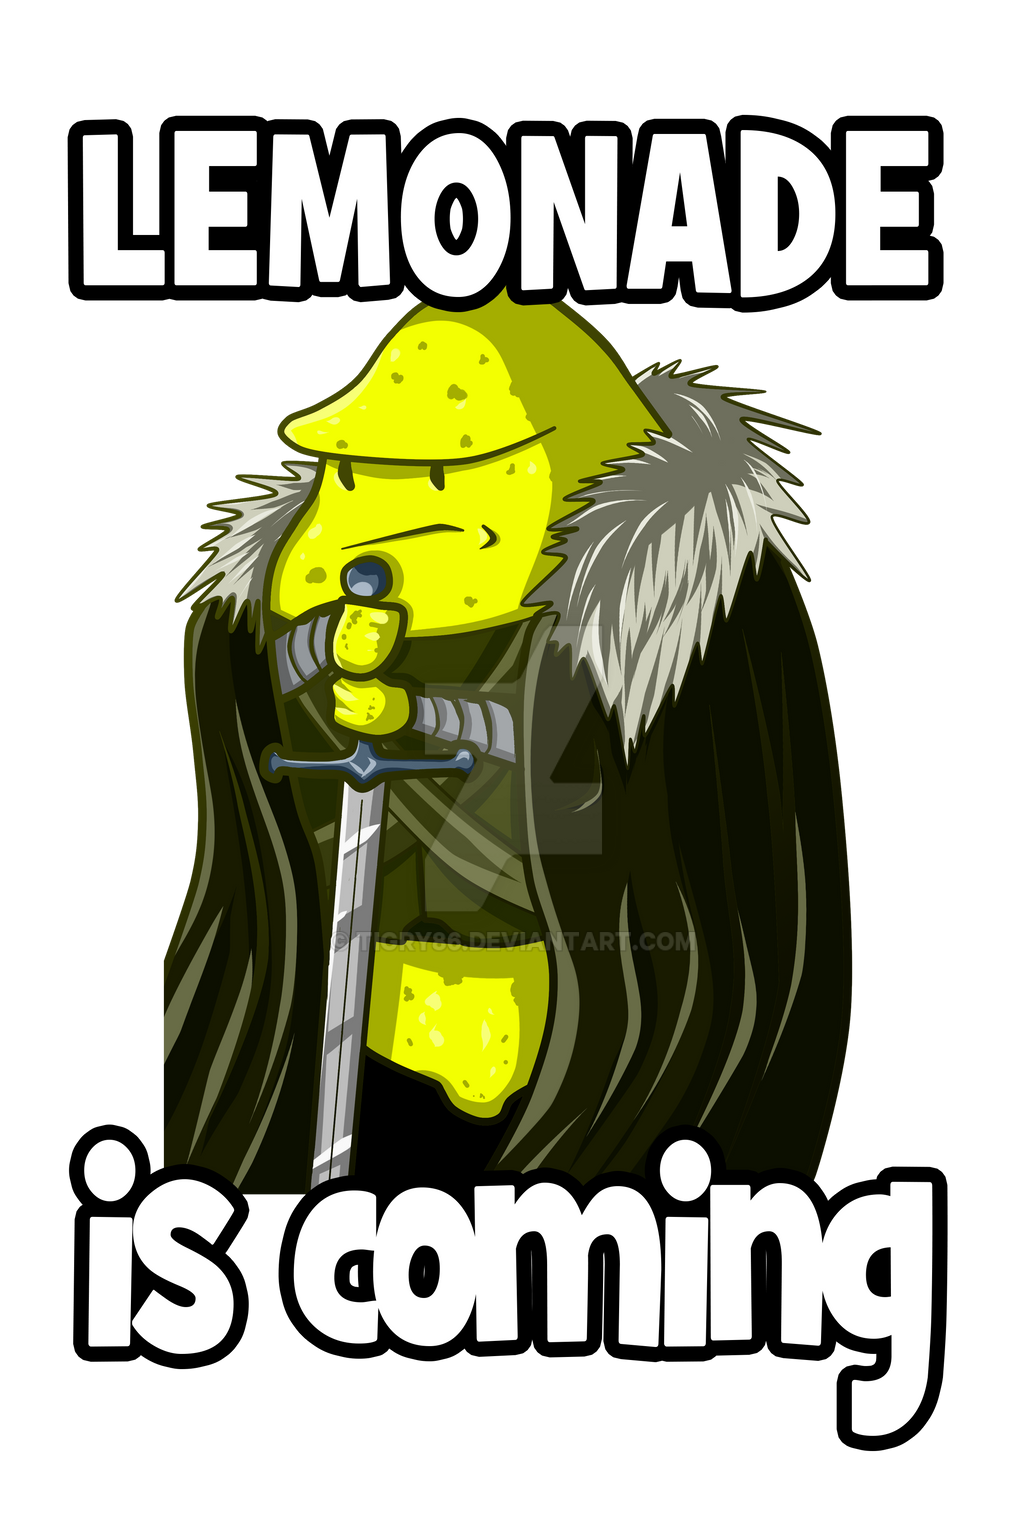 LEMONADE IS COMING by Tigry86